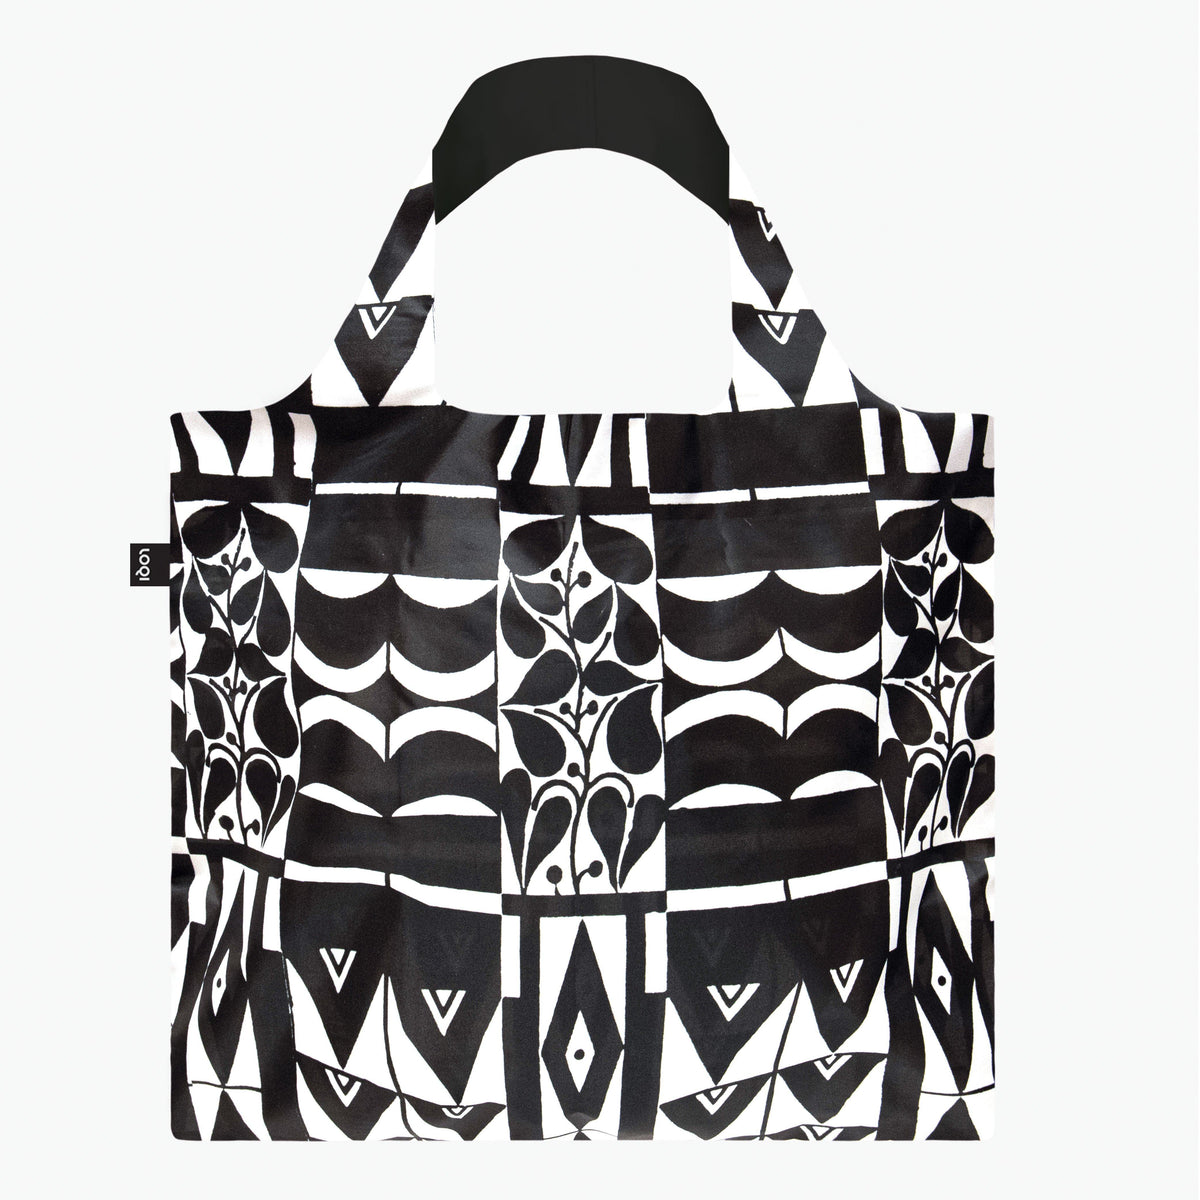 Fabric Pattern Monte Zuma for the Wiener Werkstaette Recycled Bag